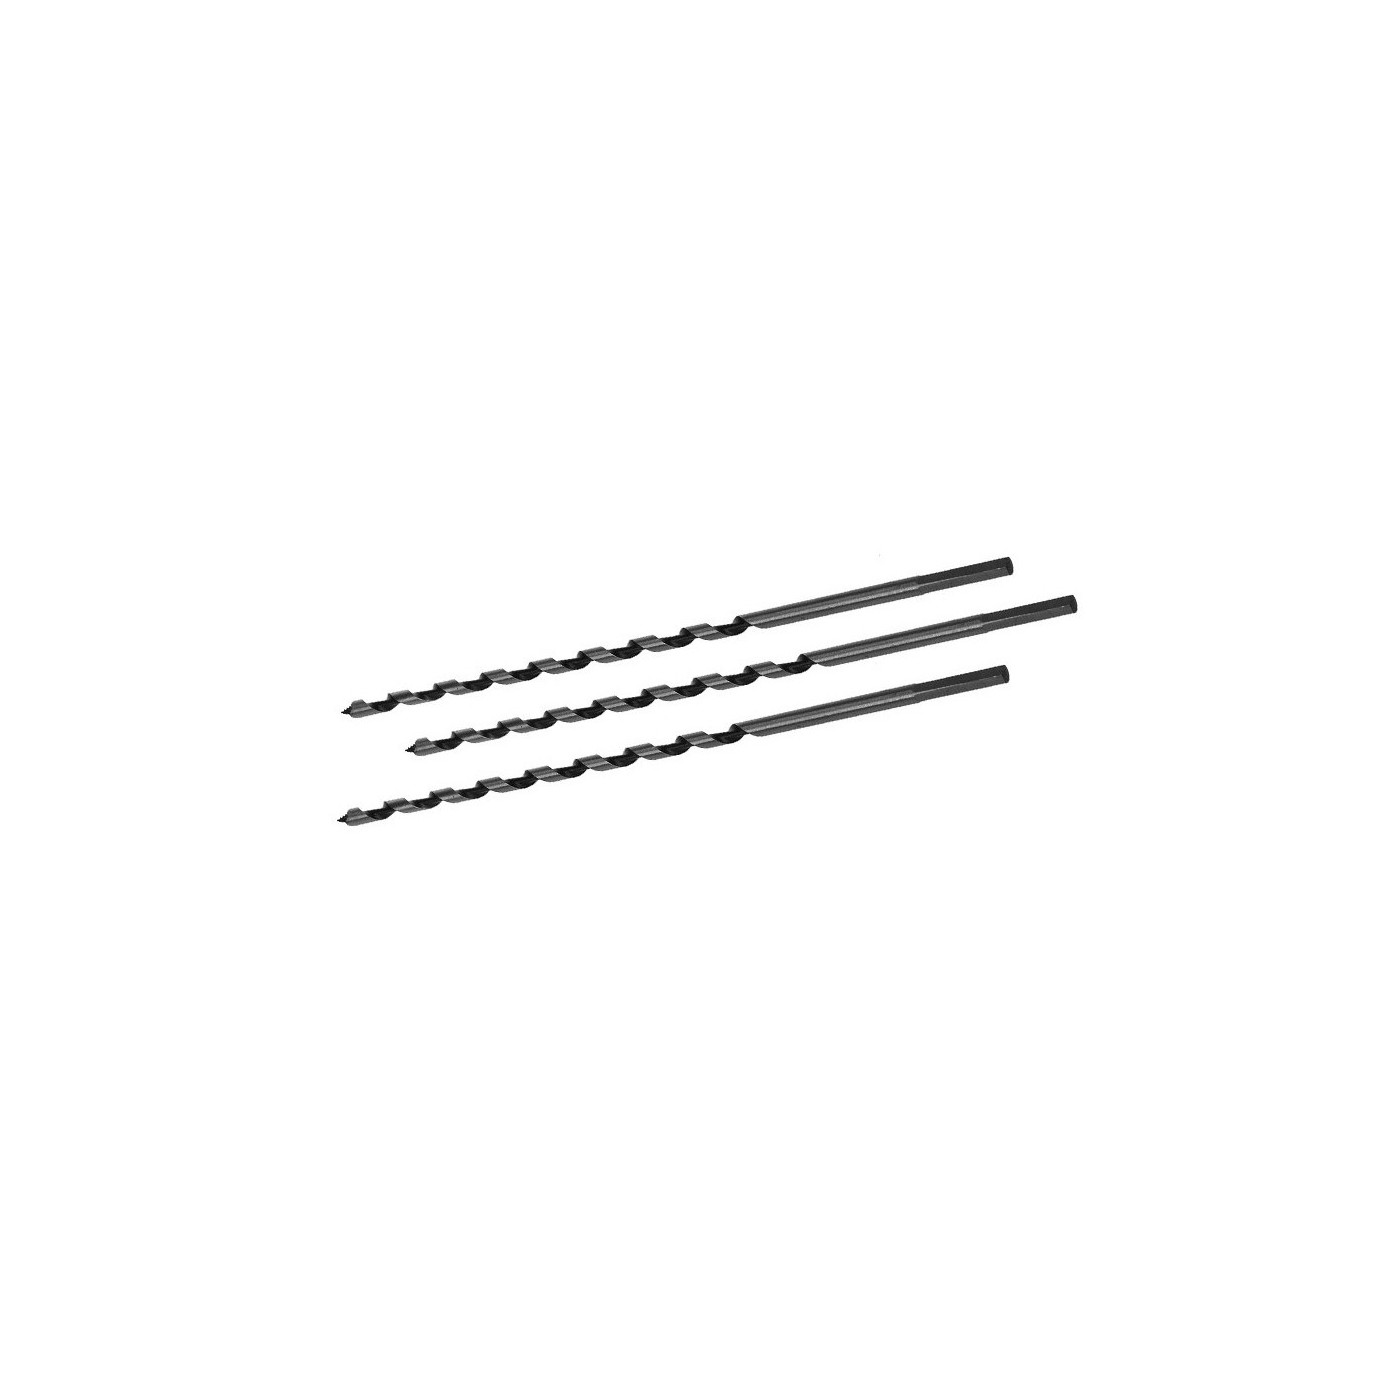 Set of 3 auger drill bits for wood, 13x230 mm